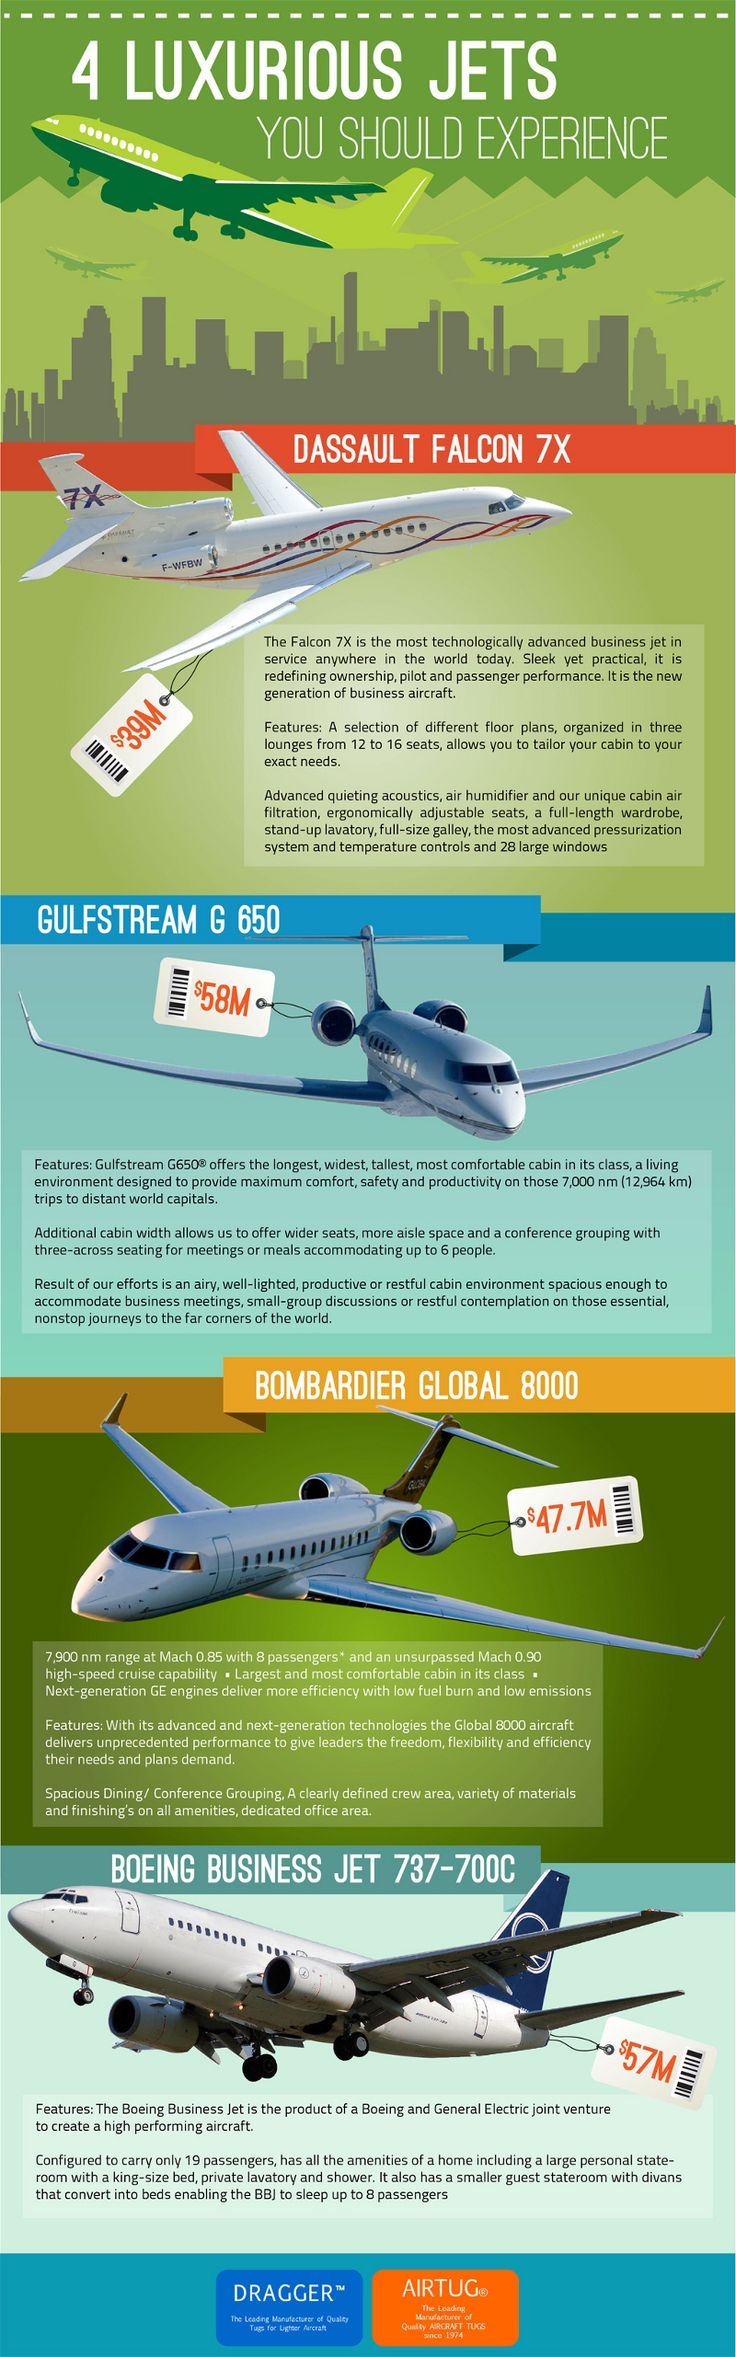 How Much Does It Cost To Buy A Private Jet? These jets are amazing, and all available for charter!